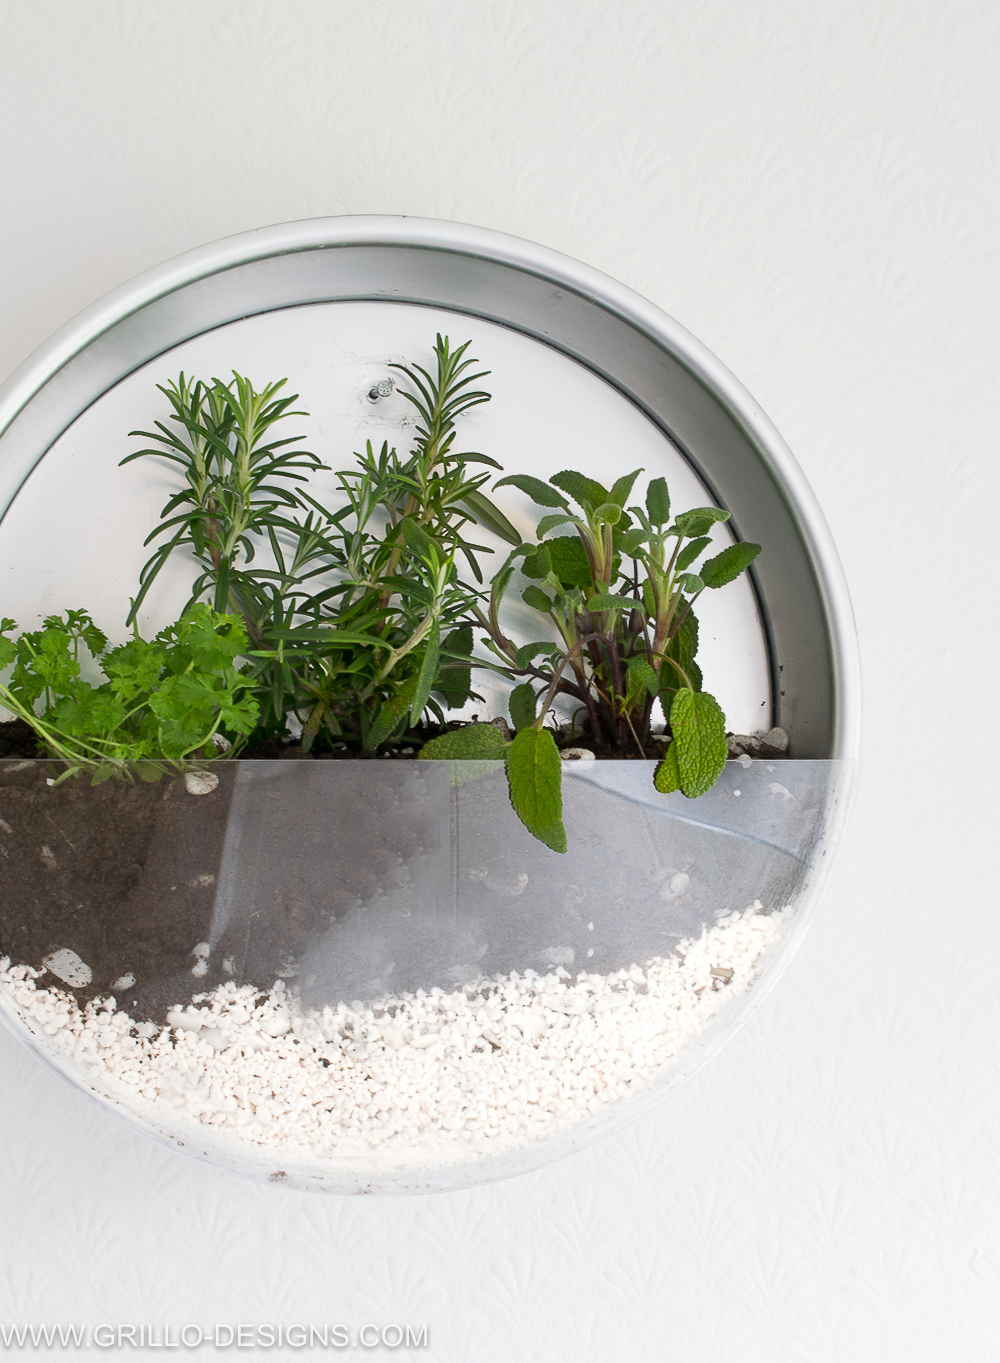 Make An Indoor Herb Planter In 10 Minutes • Grillo Designs